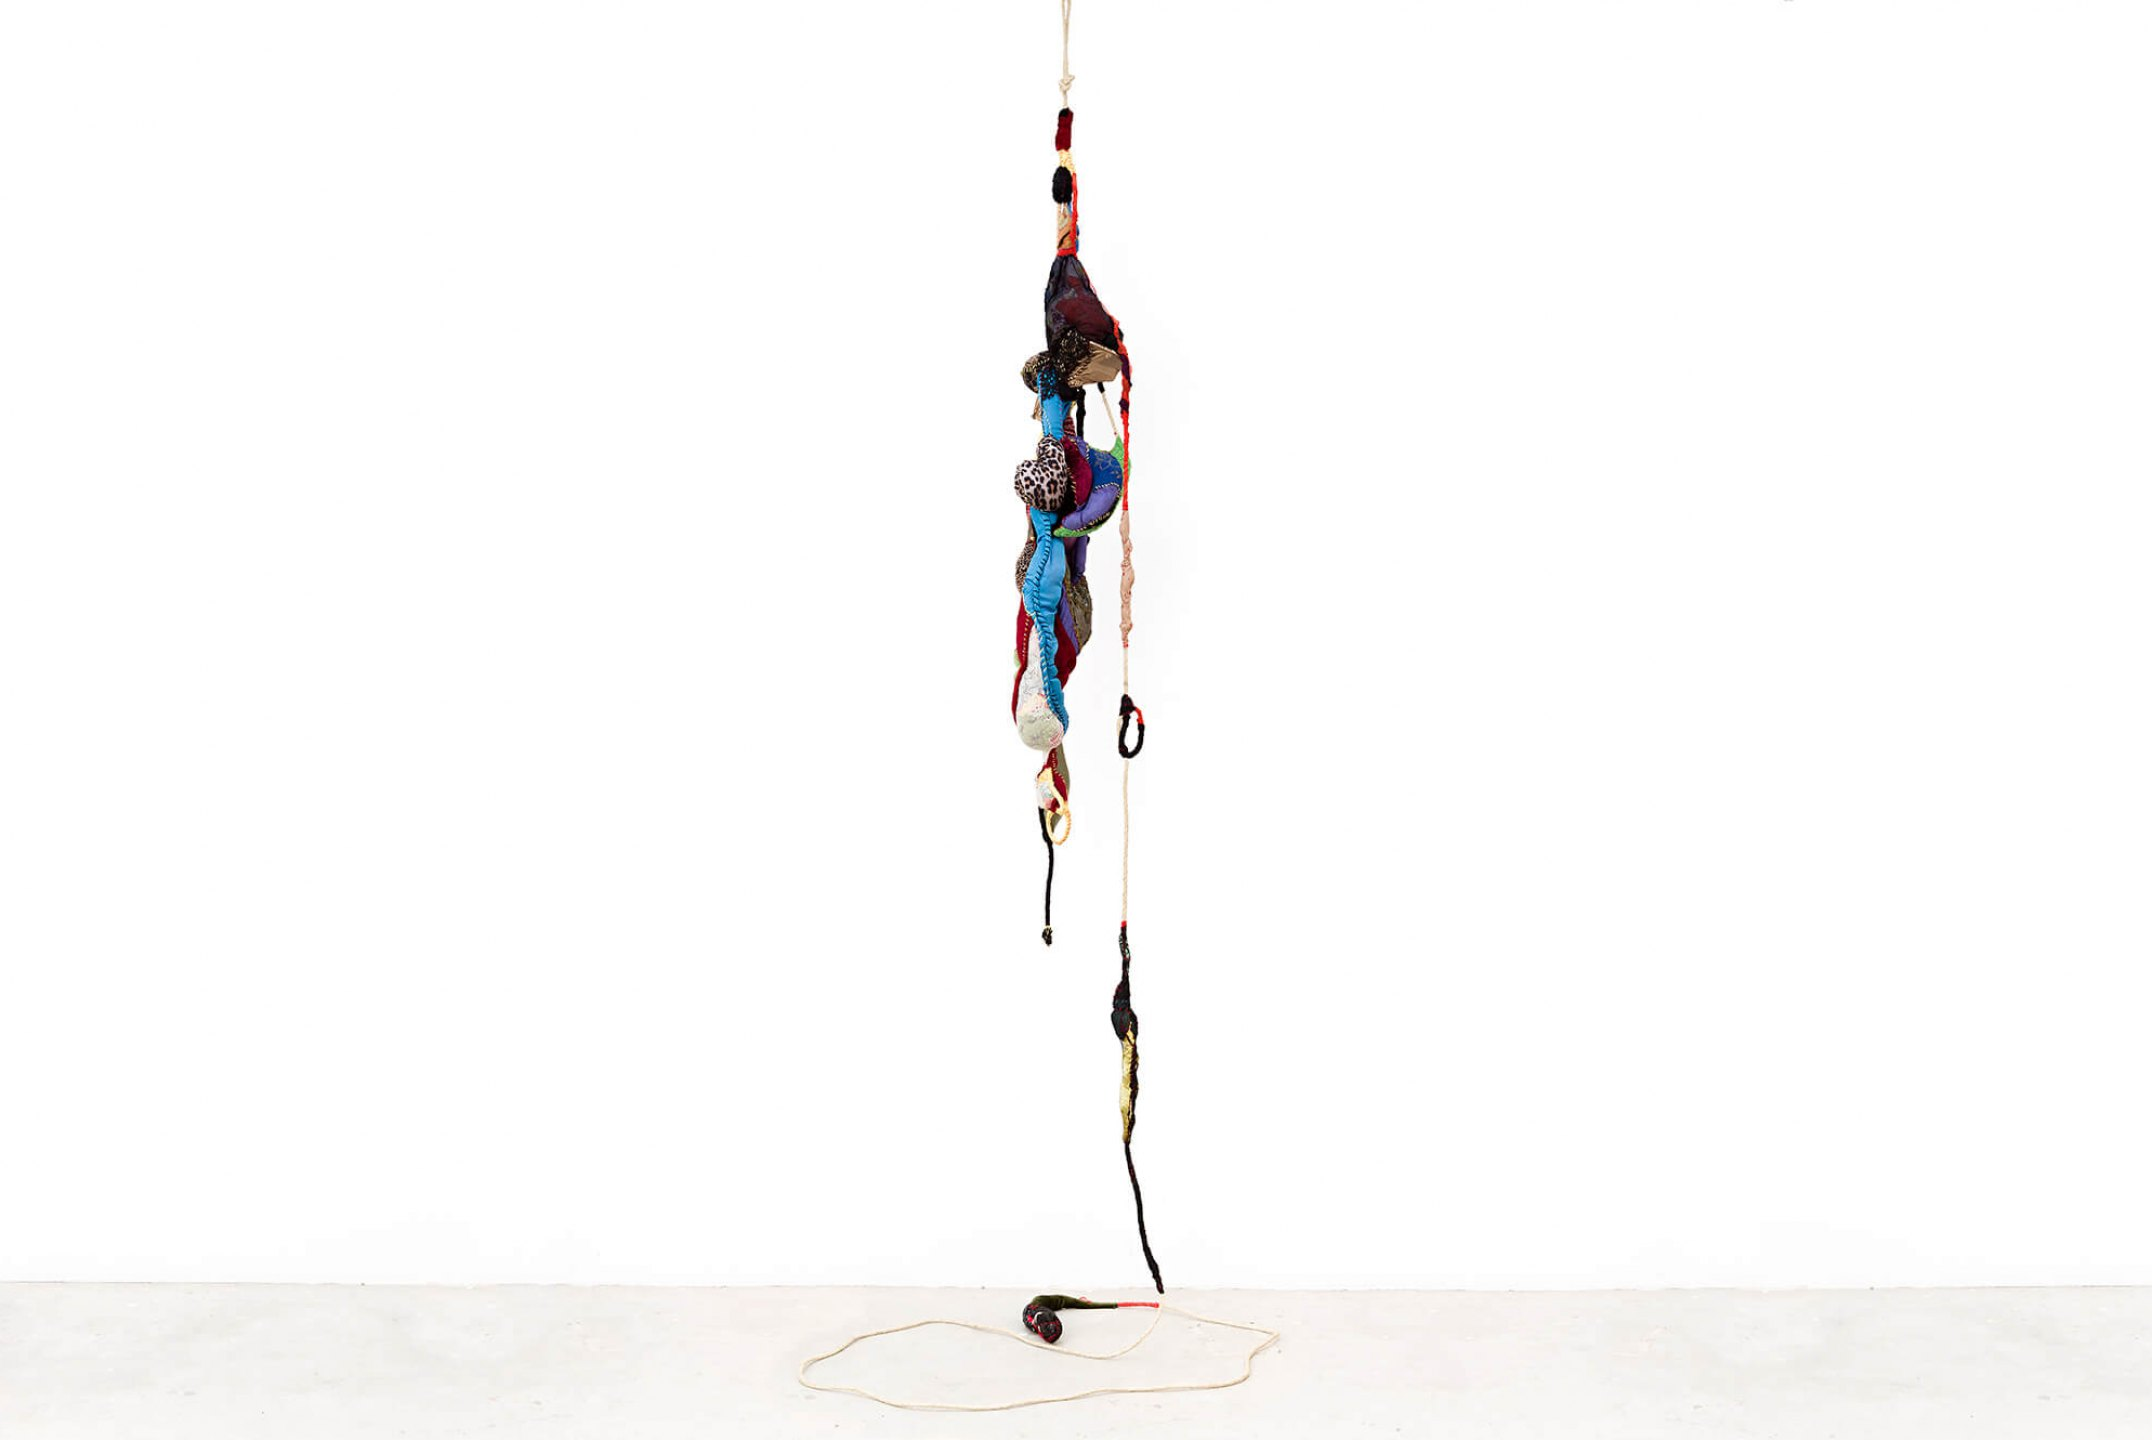 Sonia Gomes,<em>untitled</em>, 2015, stitching, bindings, different fabrics and laces on wire, 300×45 cm ø - Mendes Wood DM